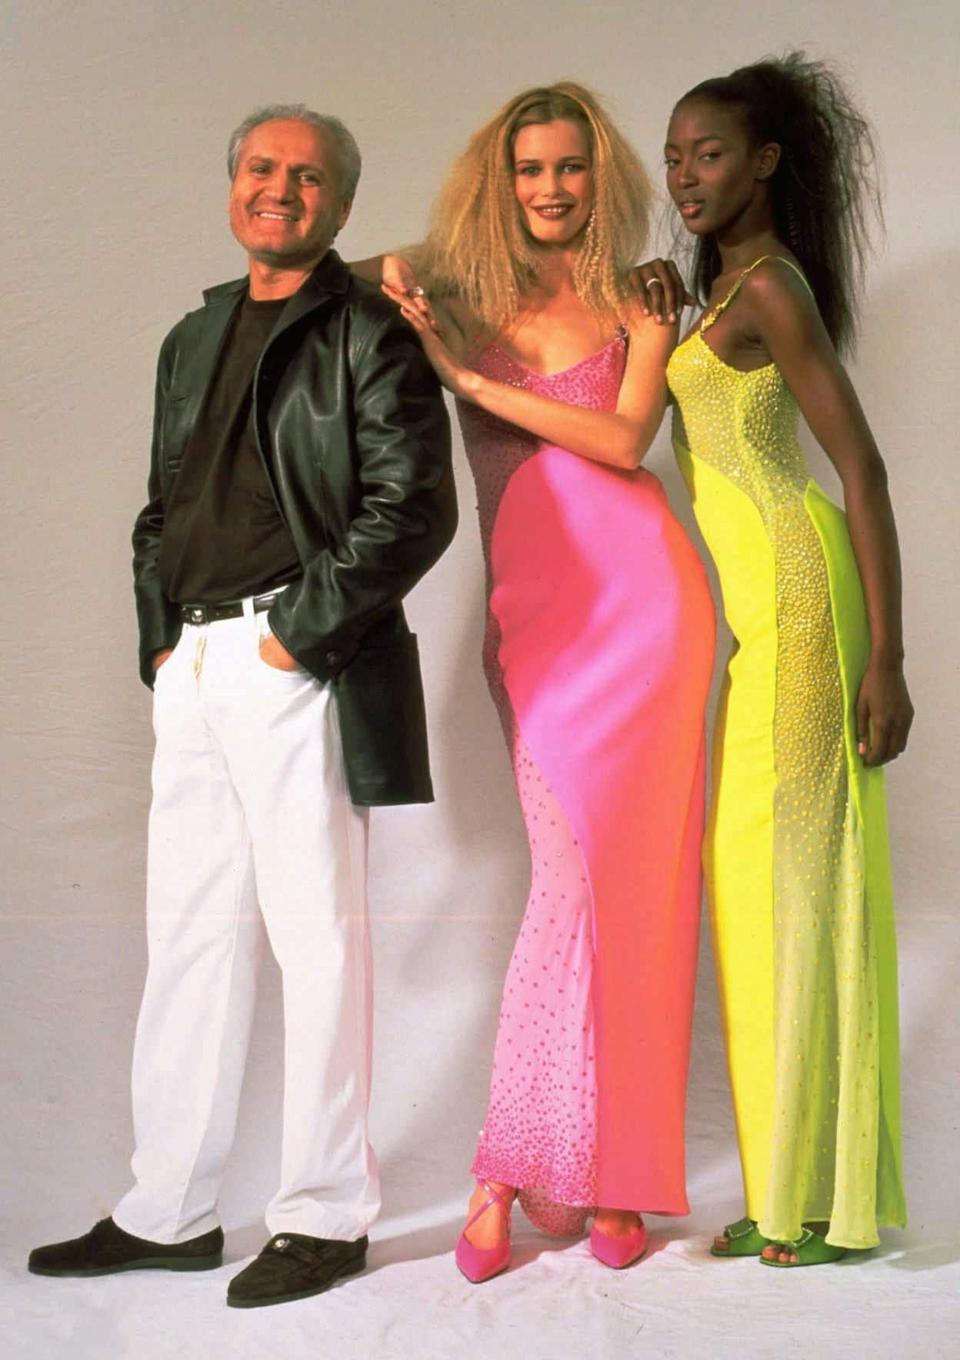 Claudia Schiffer and Naomi Campbell with Gianni Versace in 1996